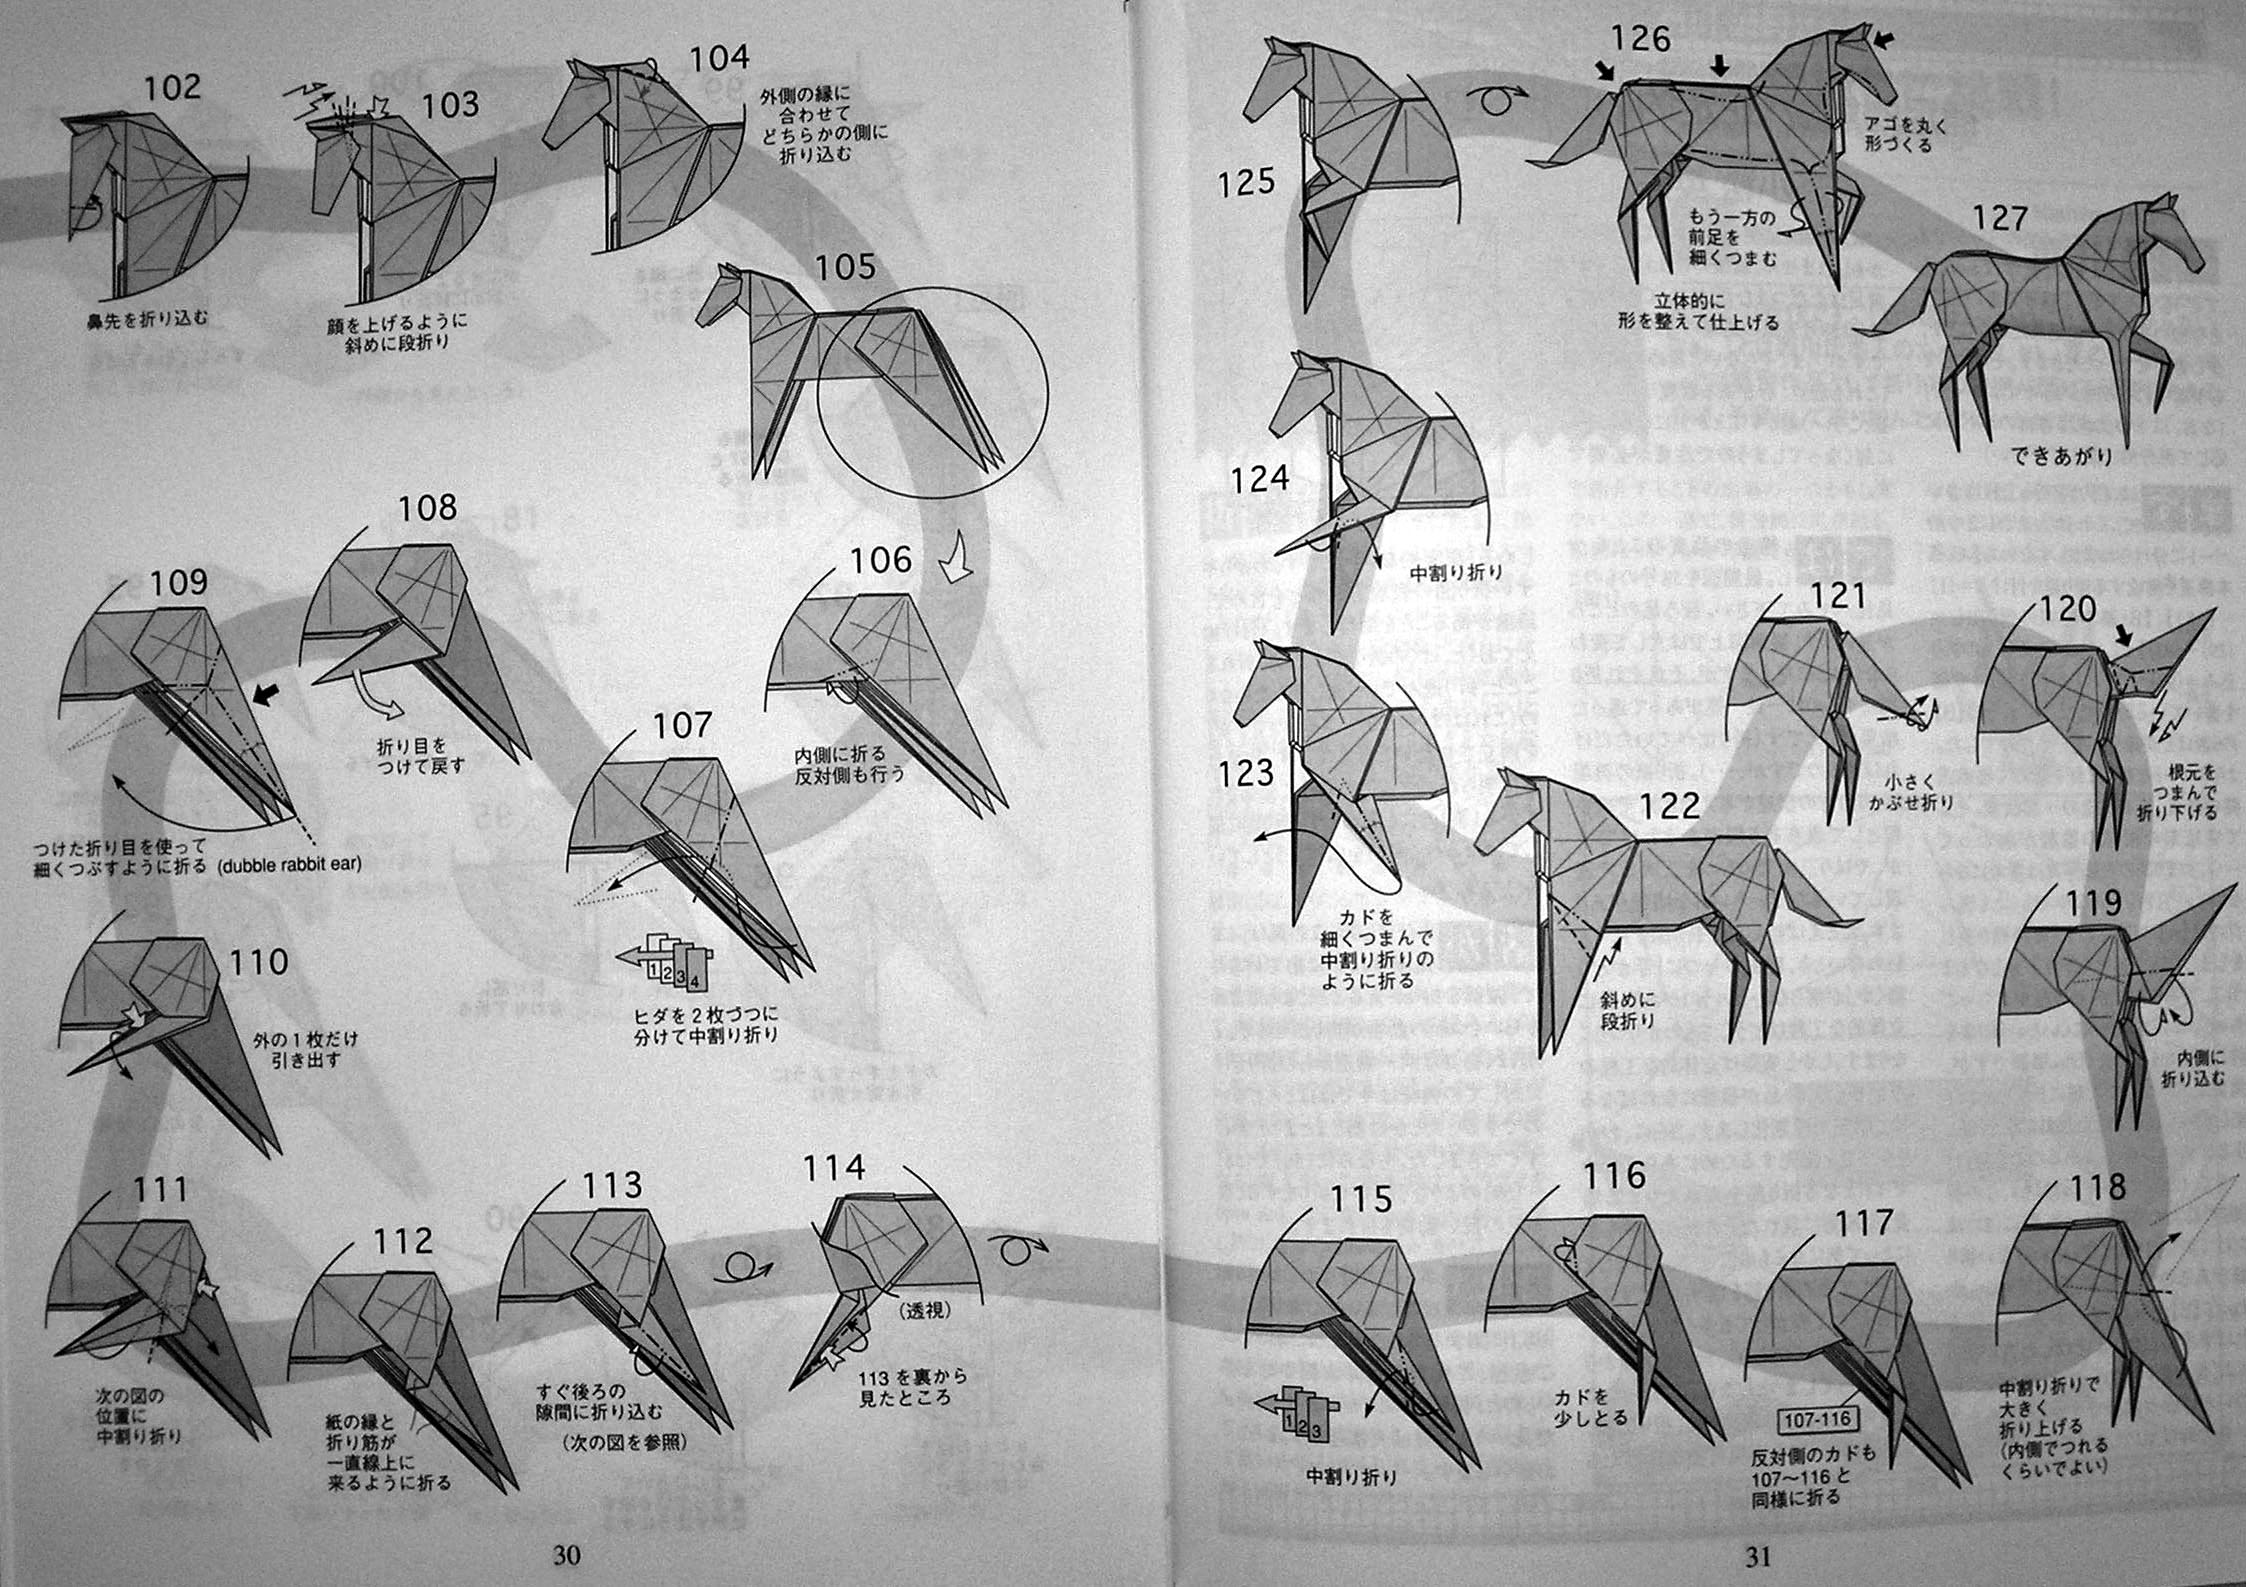 origami dove diagram earthquake with labels horse by hideo komatsu